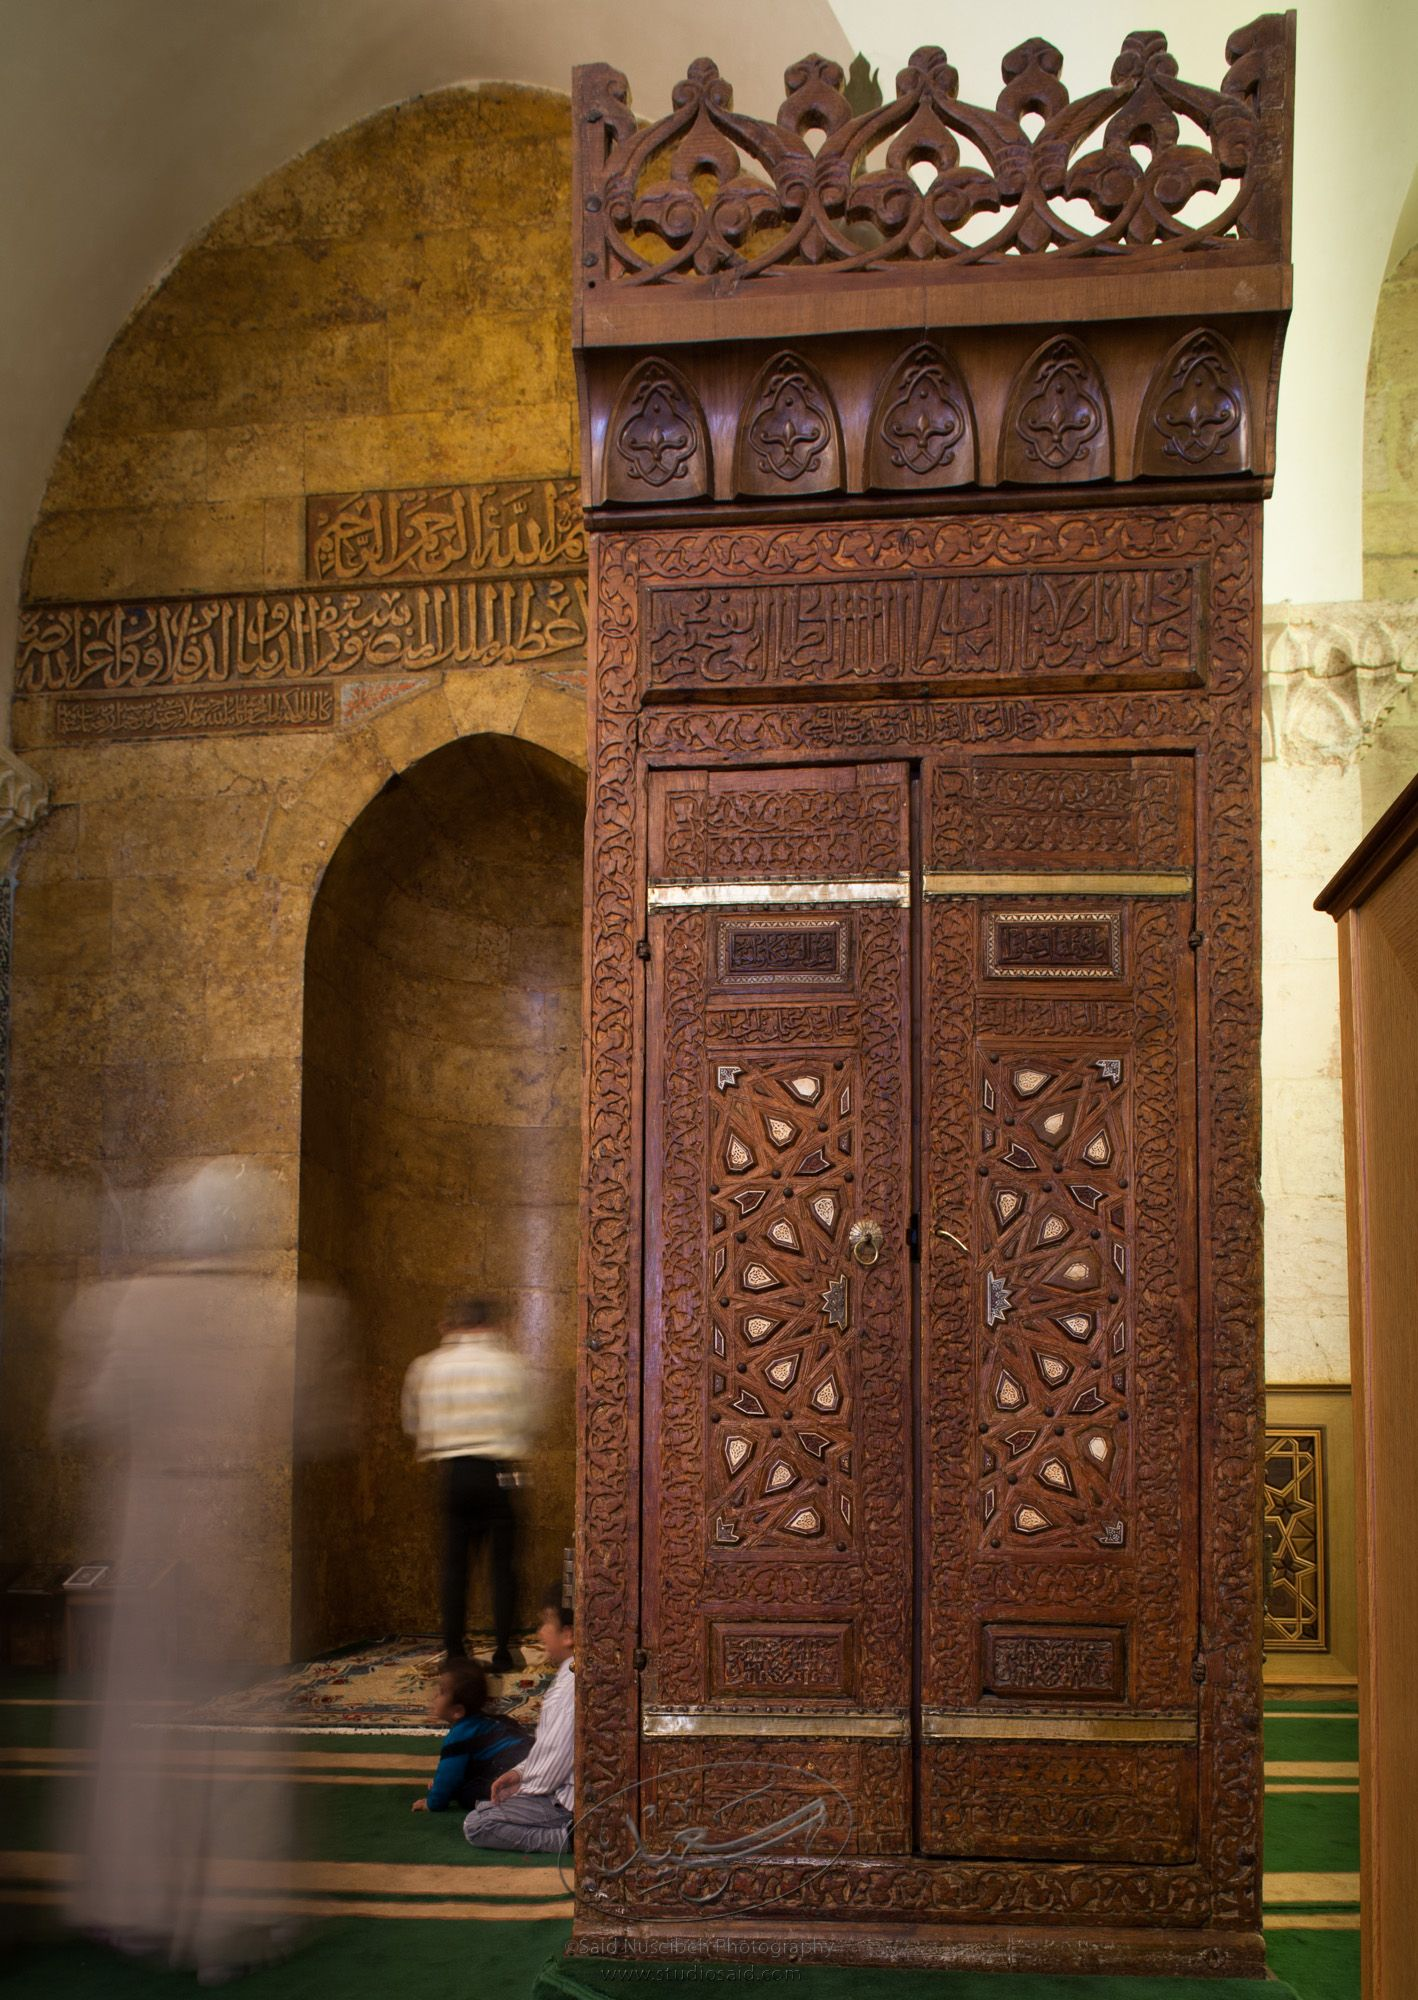 """Mihrab and Minbar, Front.""    The late-13th / early-14th c. Mamluk minbar, or pulpit, of Sultan al-Nasir Muhammad, the ninth Mamluk Sultan from Cairo and son of Qalawun. The minbar was located in the Umayyad Mosque in Aleppo, Haleb, prior to its damage and disappearance in May 2013."